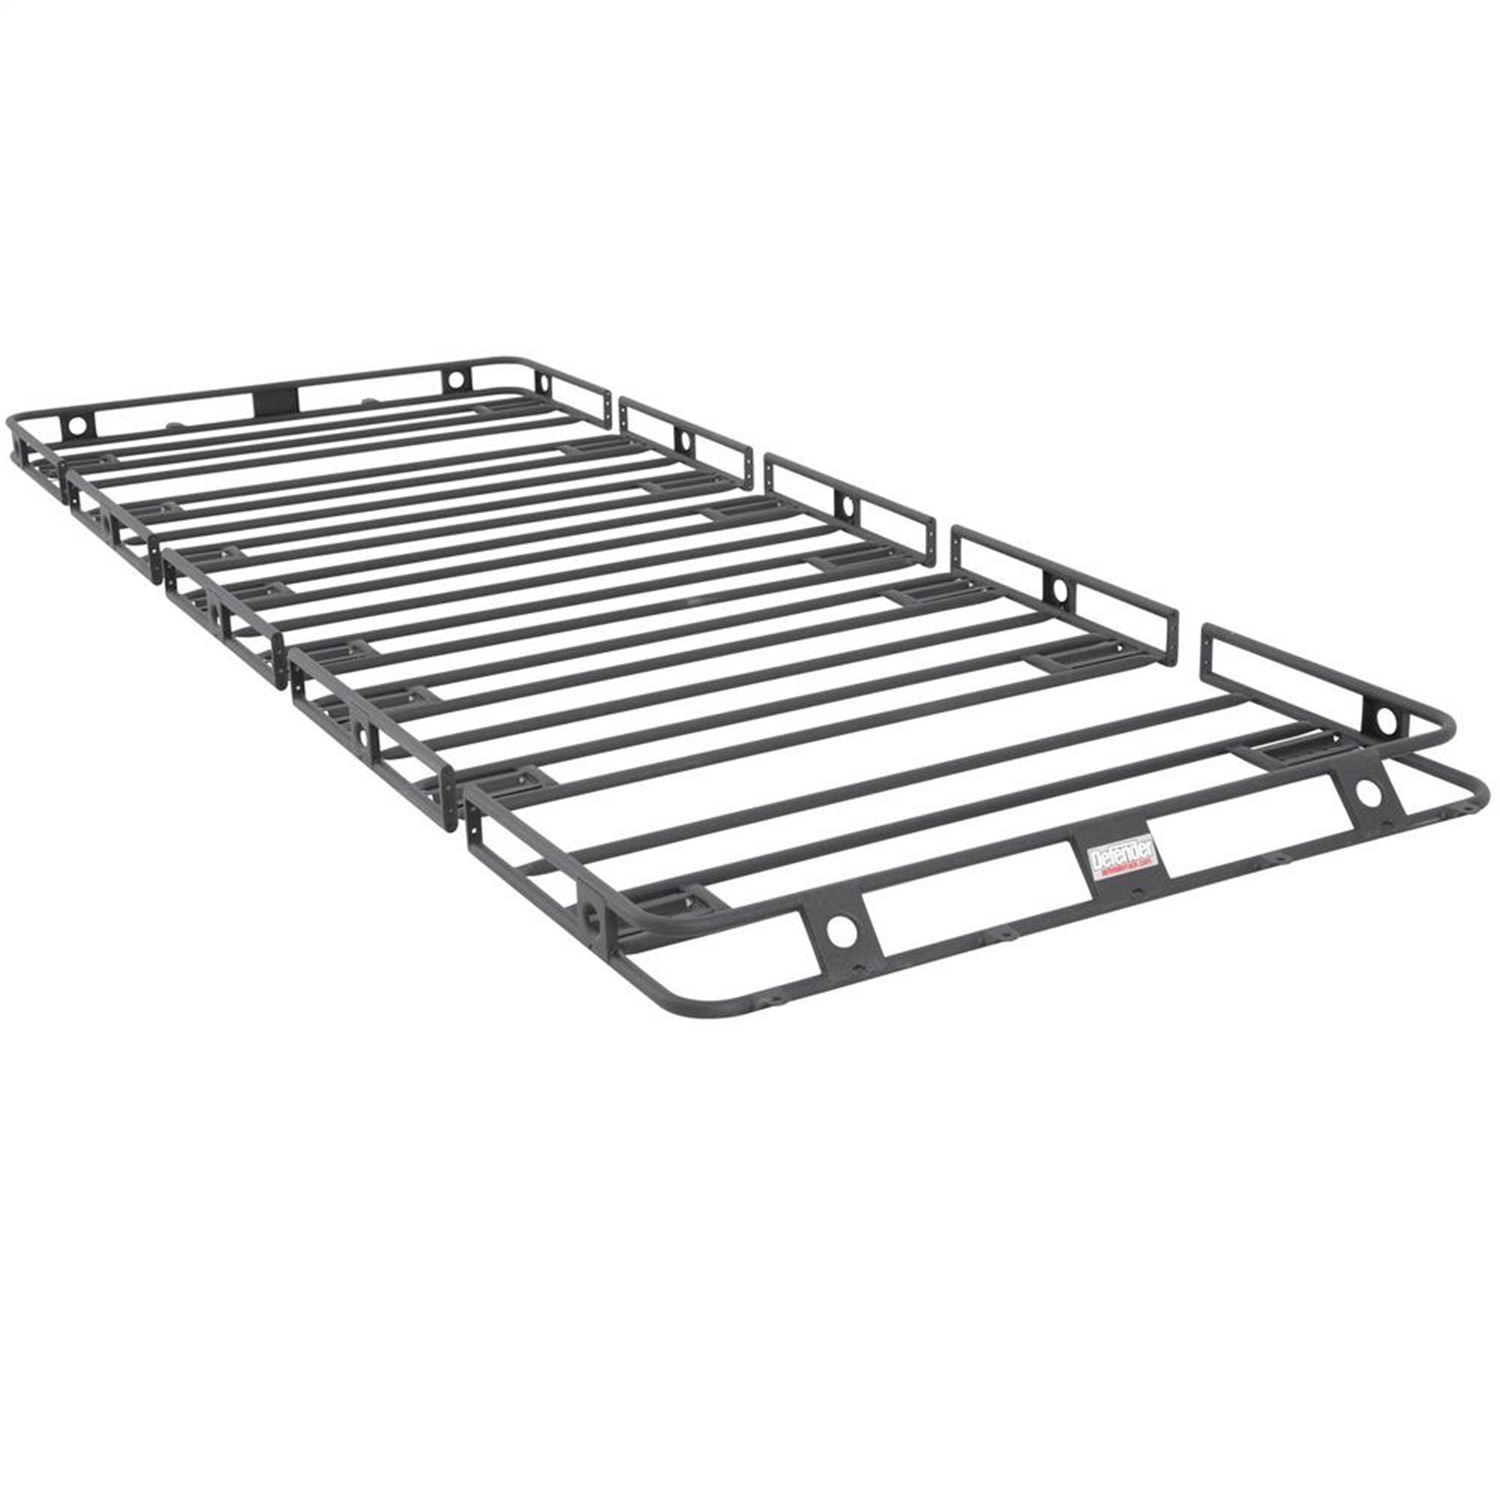 Smittybilt Hd Defender Roof Rack